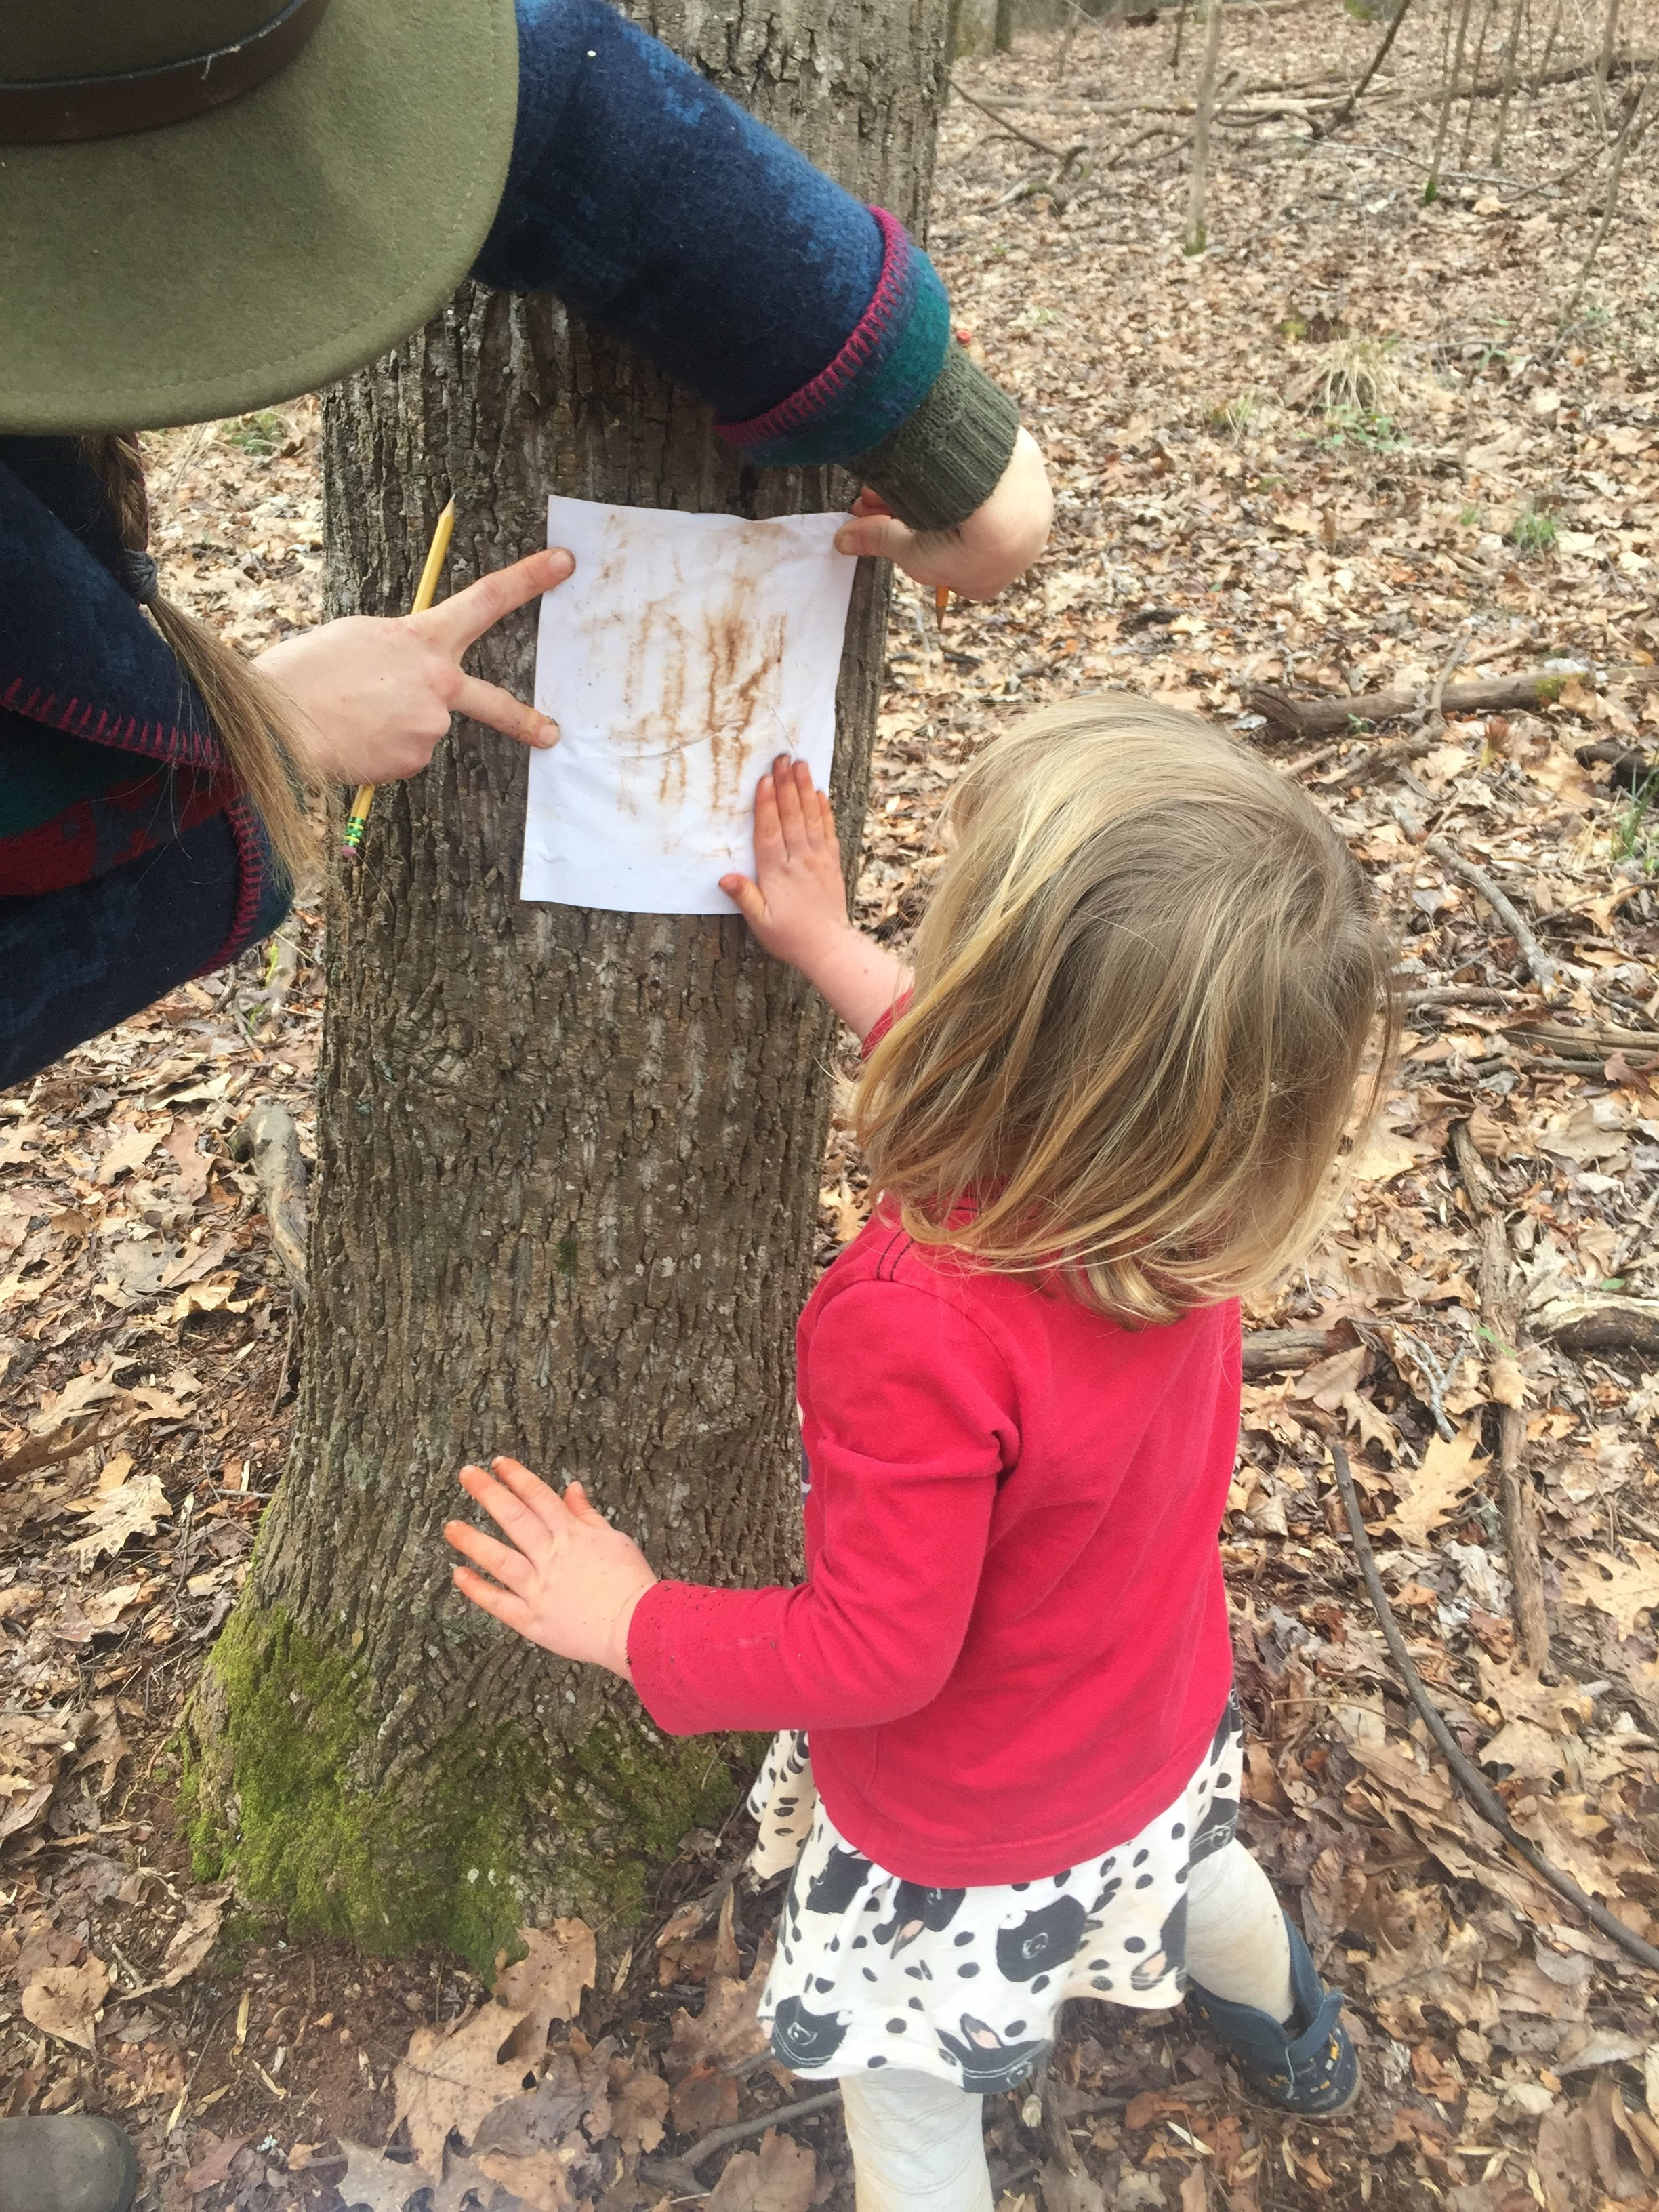 Larkin and Kylie made some bark rubbings with dirt.